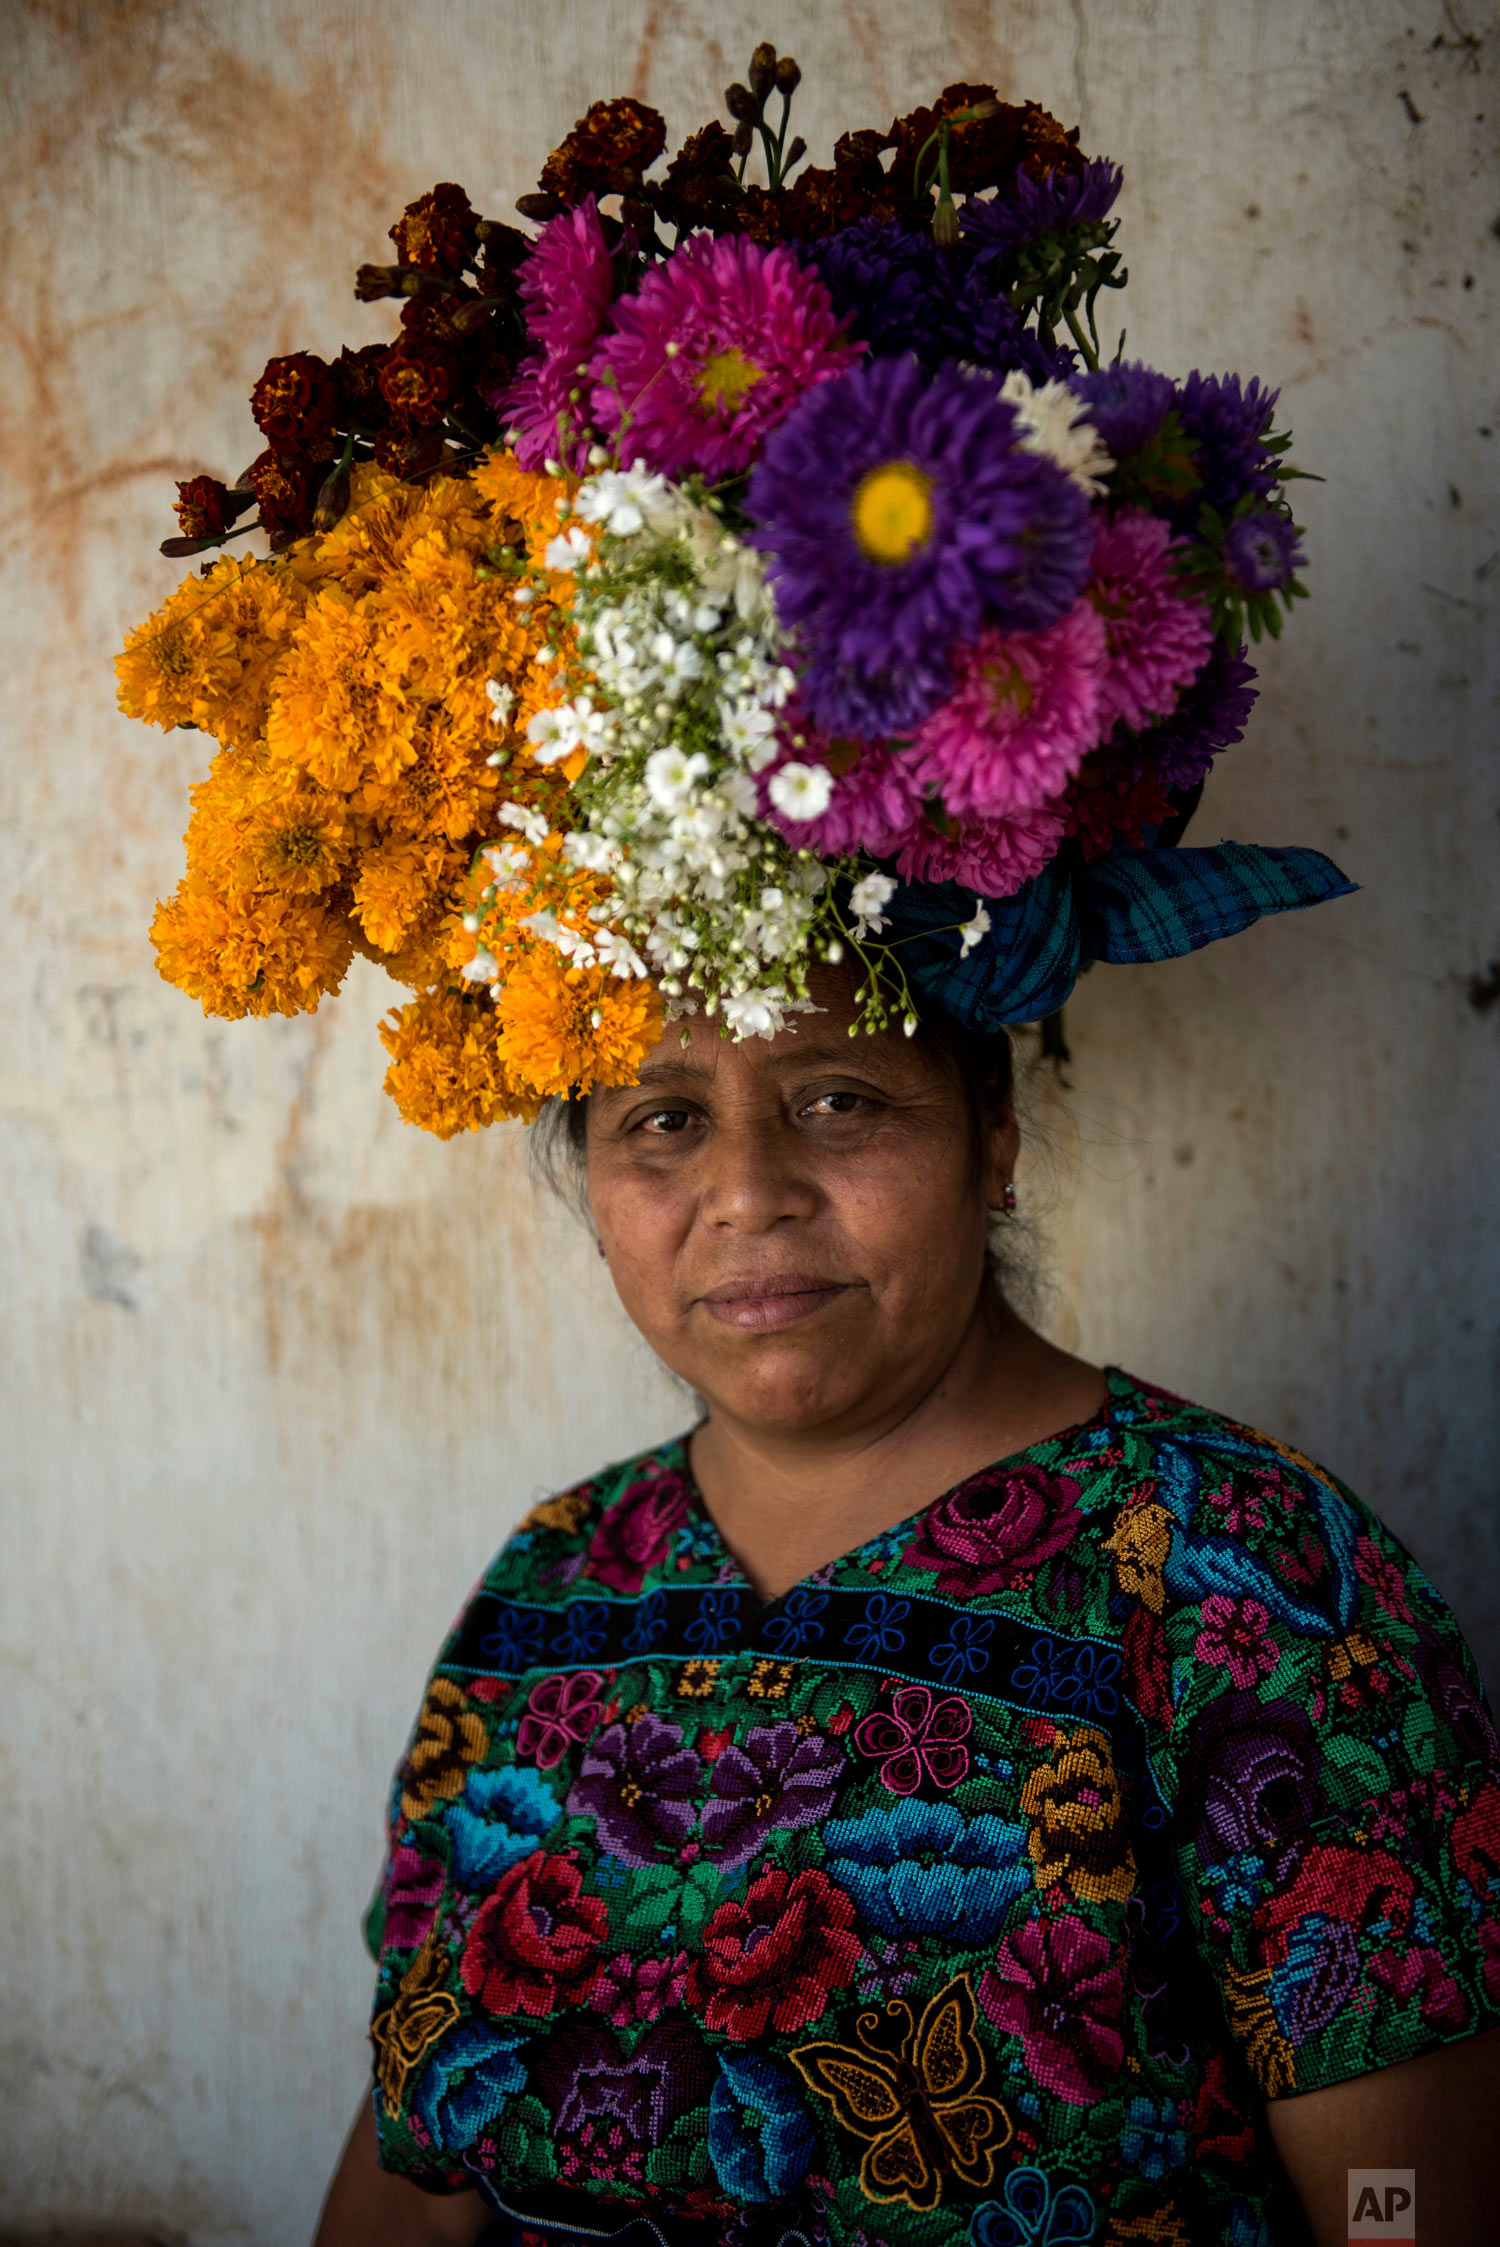 In this Nov. 1, 2018 photo, Olga Socorec balances flowers on her head as she poses for a portrait while decorating the tombs of family members, including her father's, during Day of the Dead celebrations at the cemetery in Santiago Sacatepequez, Guatemala. (AP Photo/Oliver de Ros)